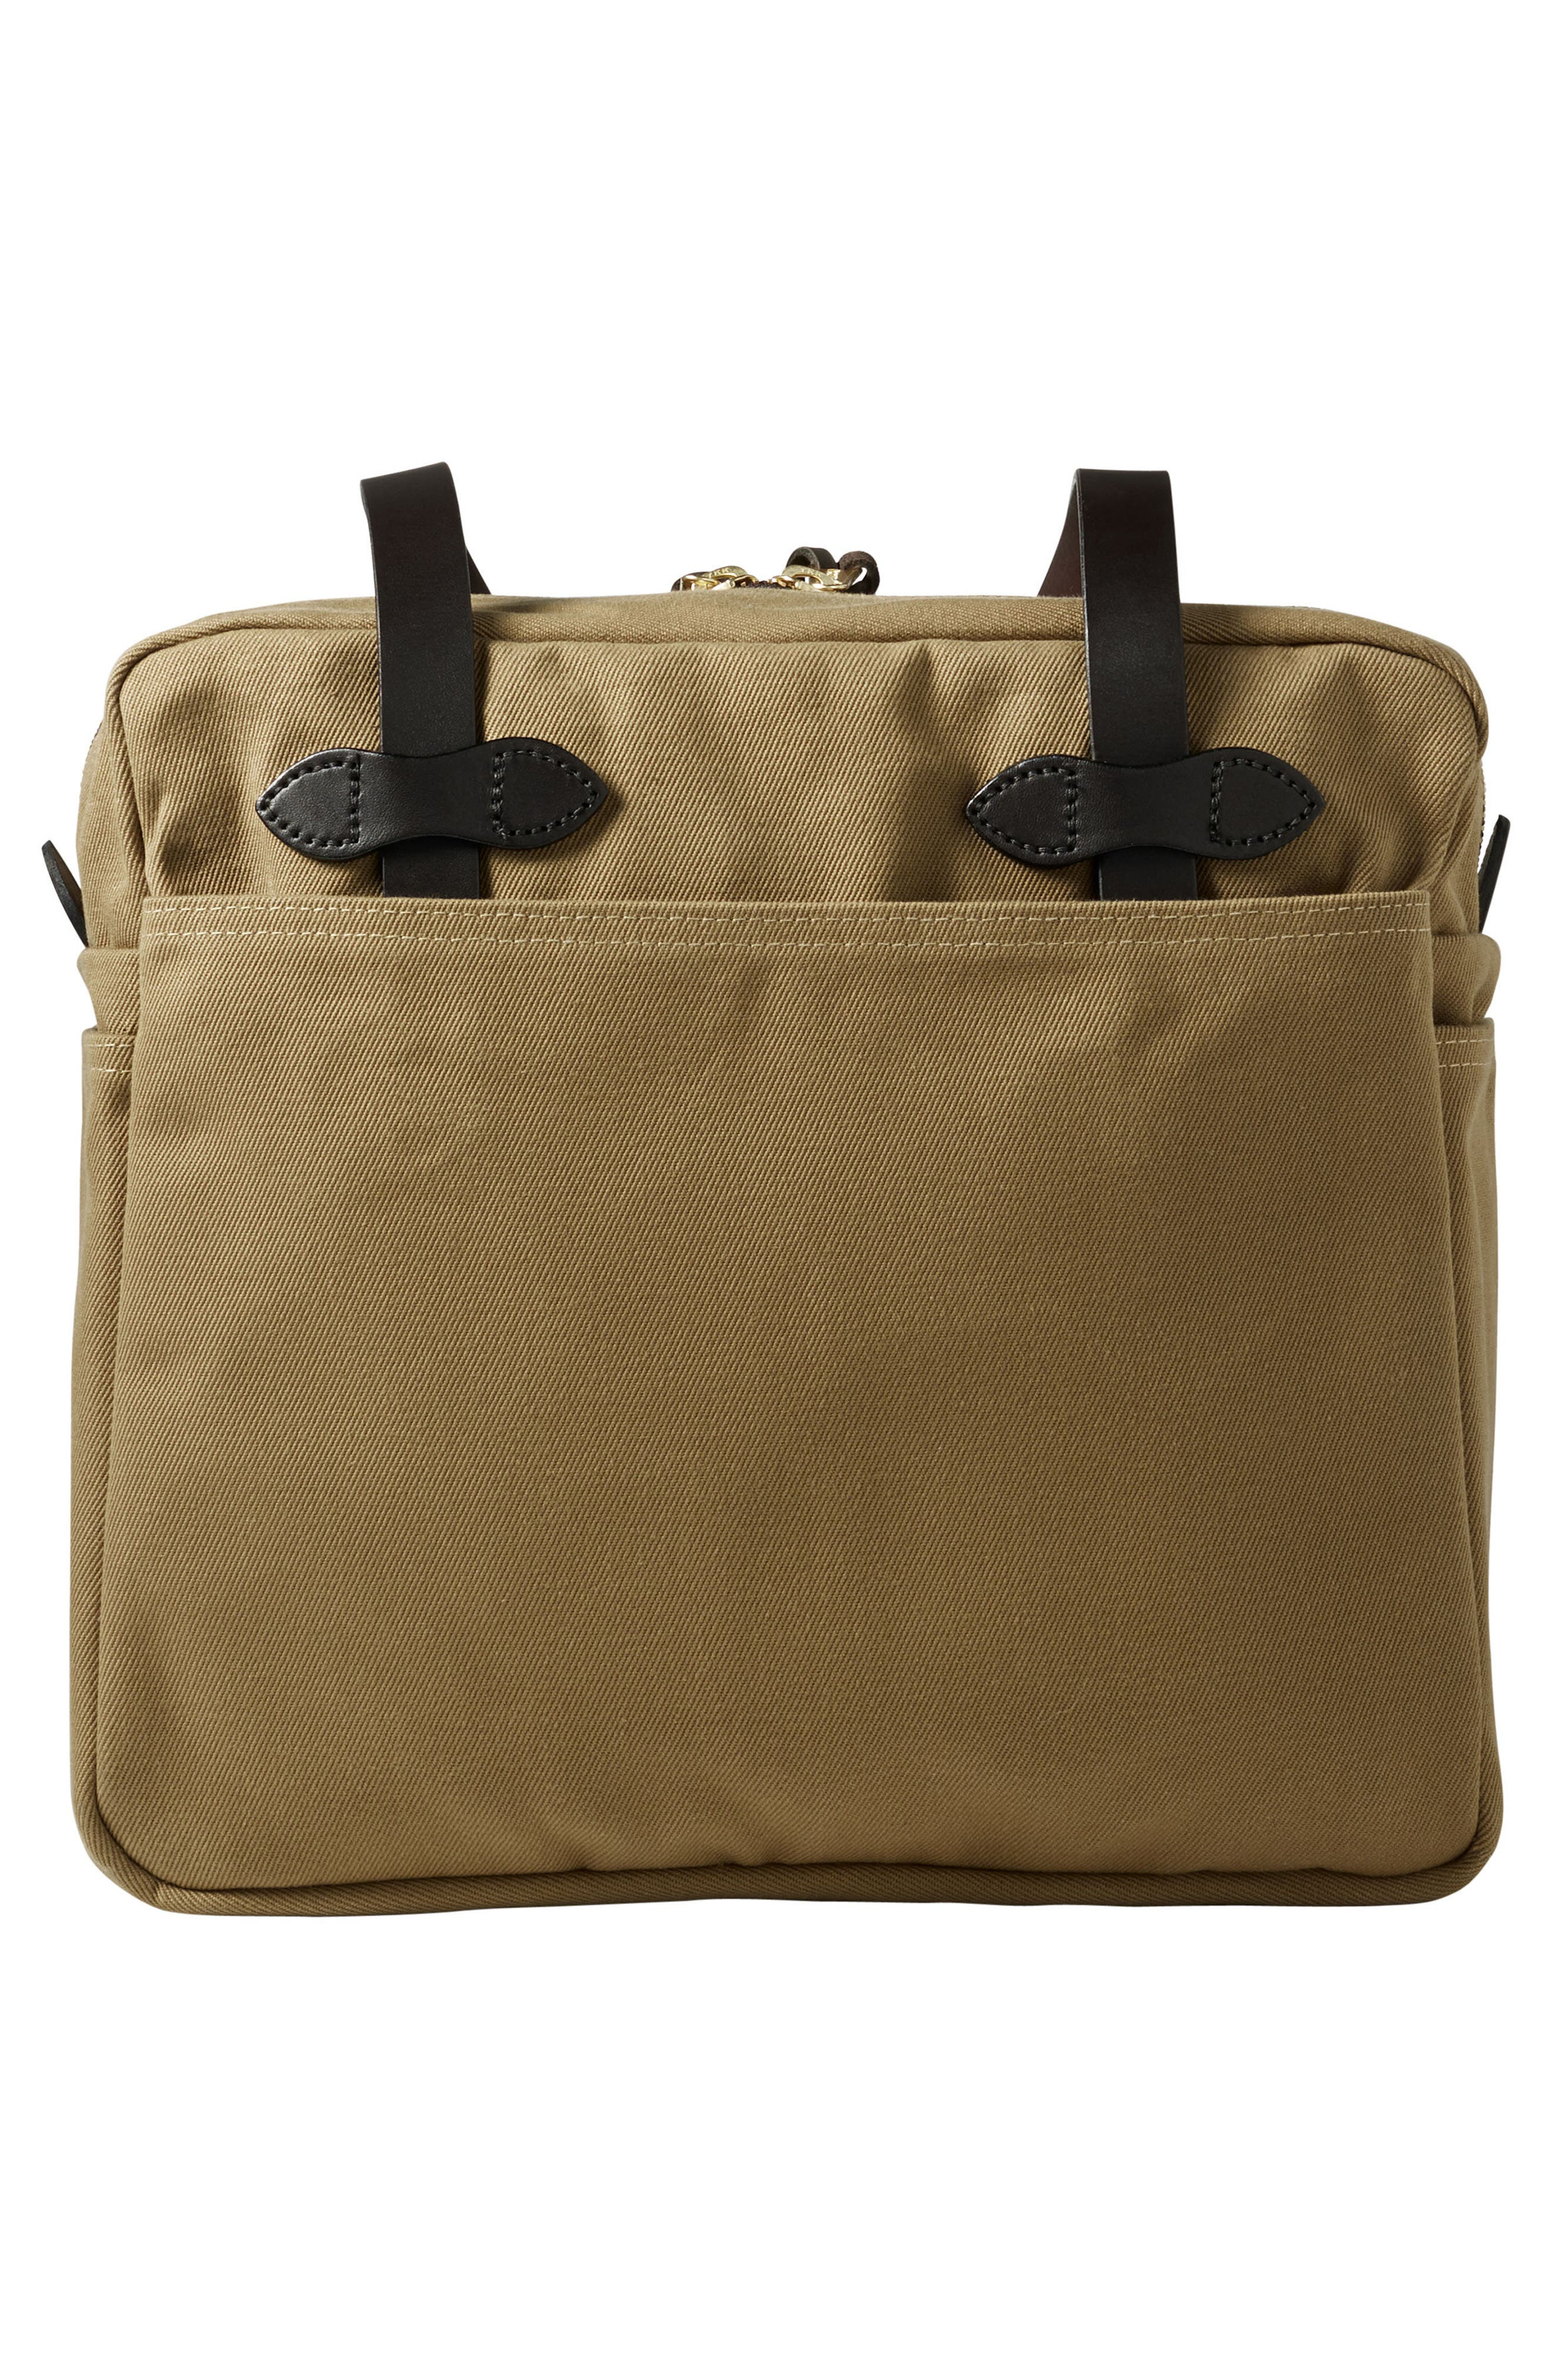 Rugged Twill Zip Tote Bag,                             Alternate thumbnail 2, color,                             Tan